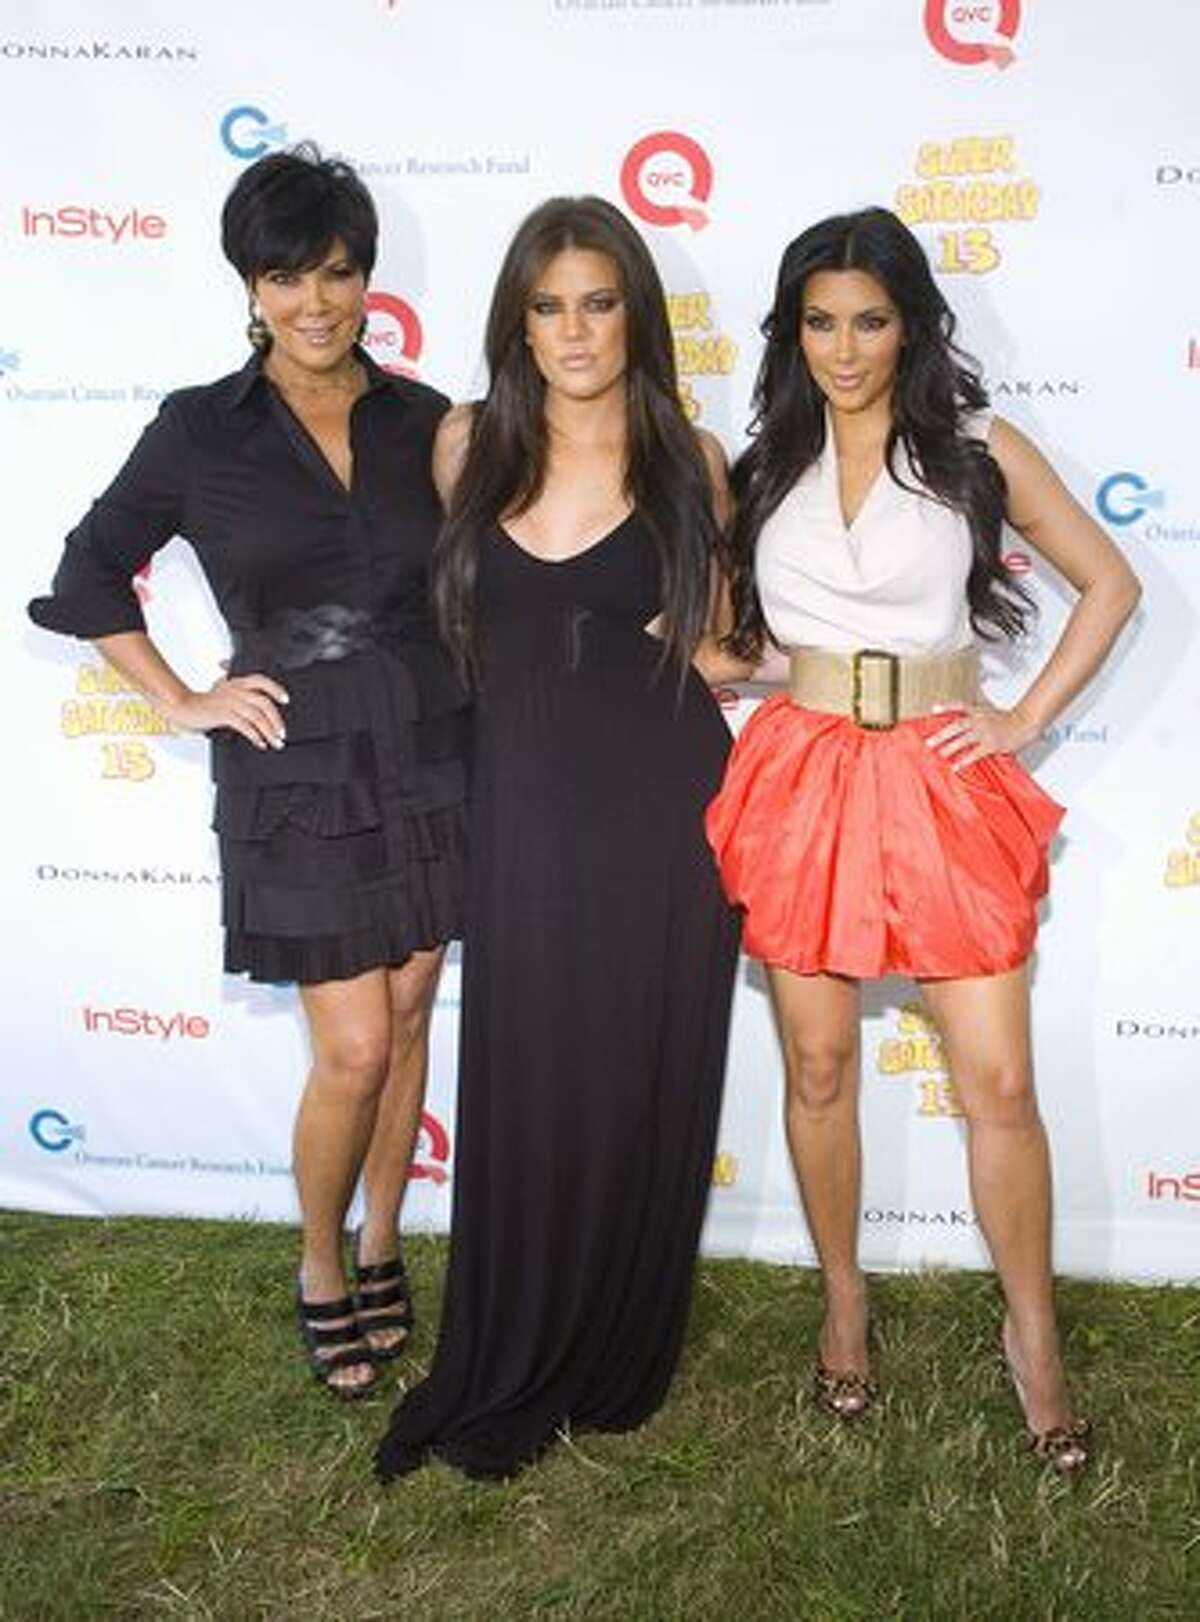 (L-R) Television personalities Kris Jenner, Khloe Kardashian and Kim Kardashian attend the 13th Annual Super Saturday event at Nova's Ark Project on July 31, 2010 in Water Mill, New York.